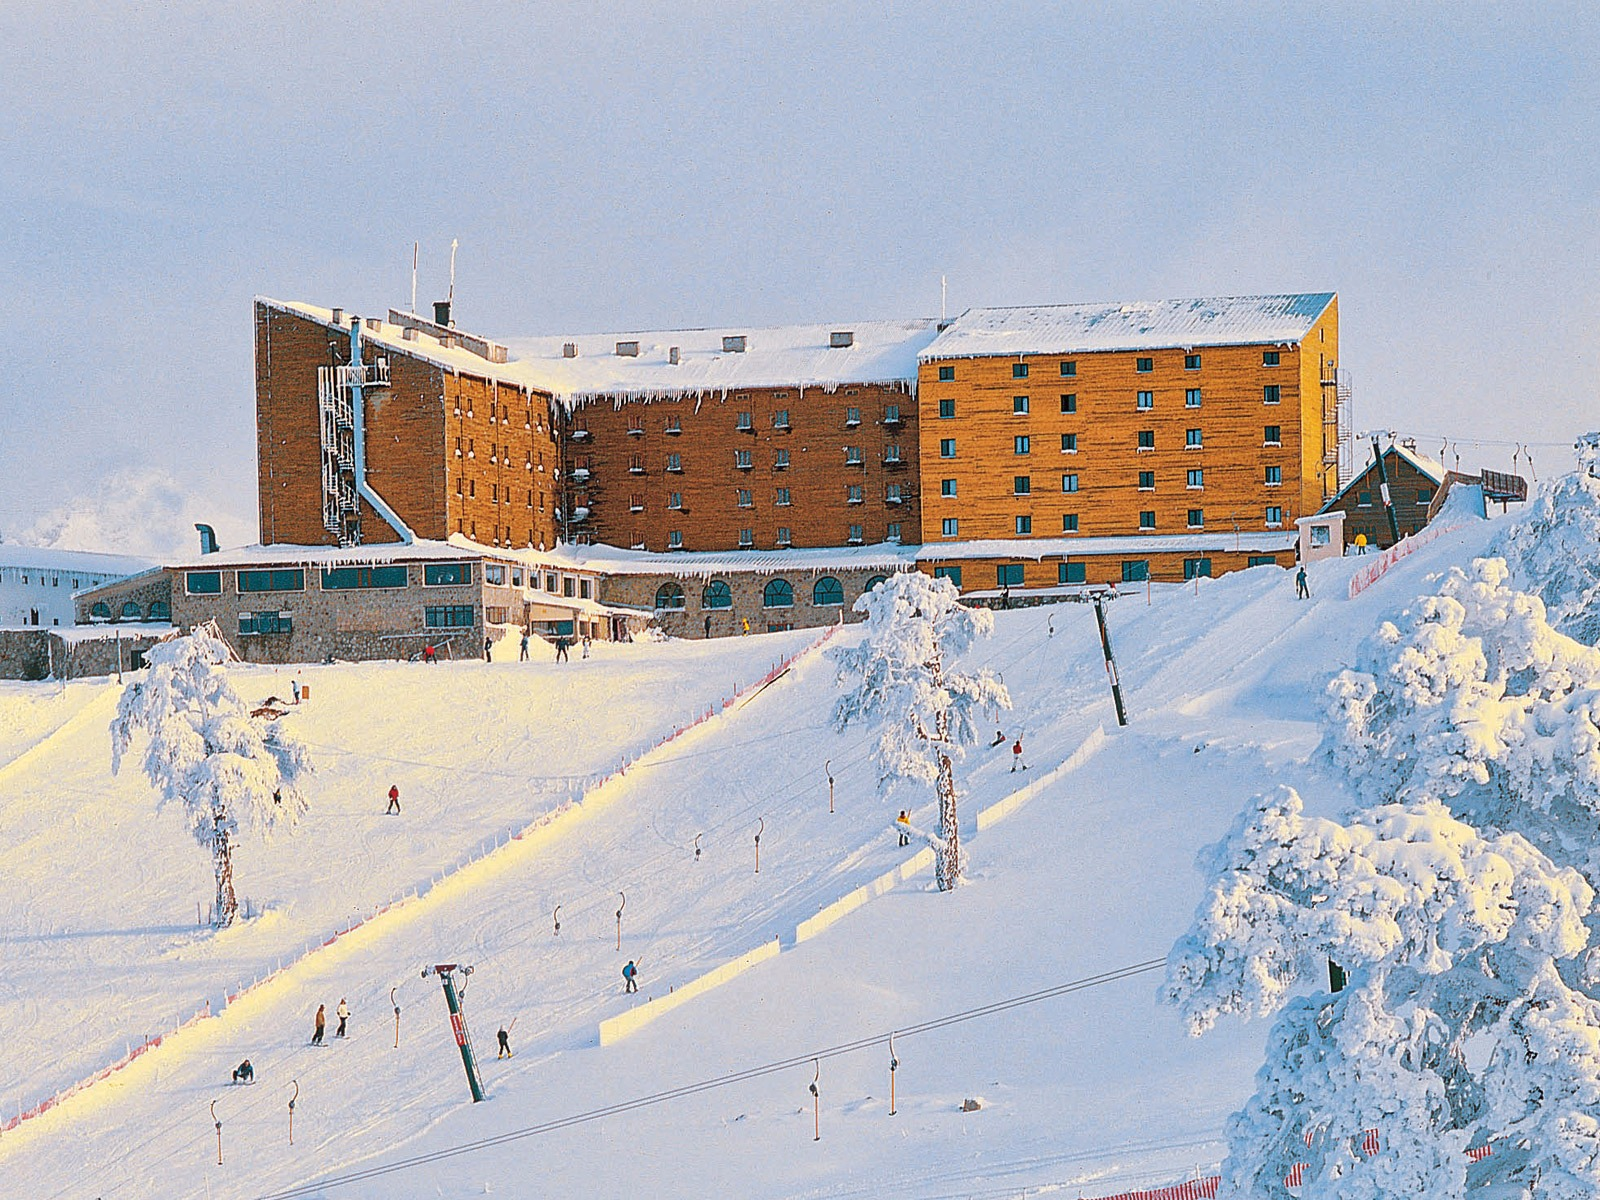 Dorukkaya Ski Mountain Resort42915